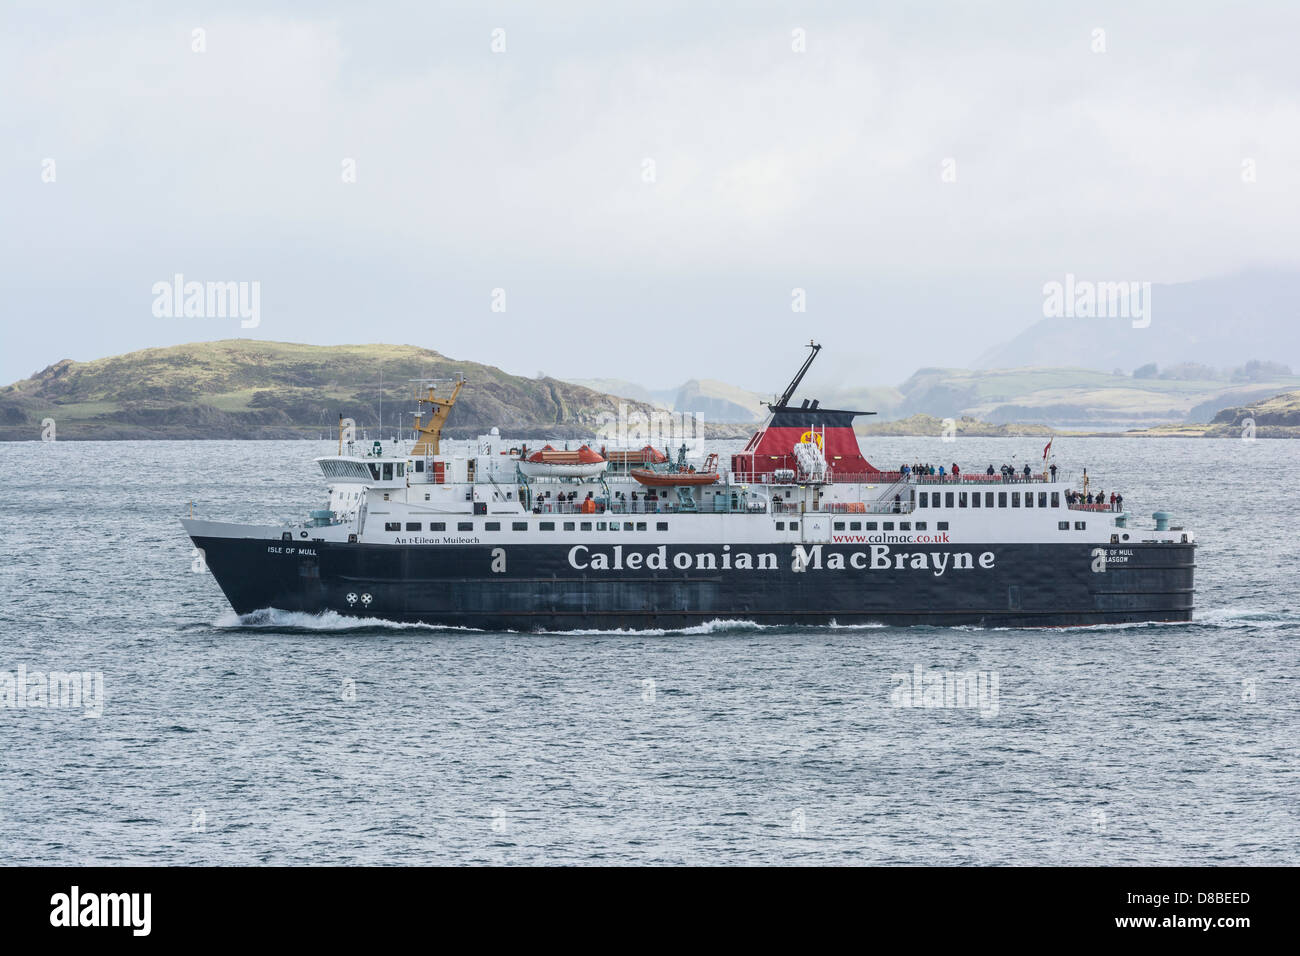 Oban to Craignure Caledonian MacBrayne Ferry, navigating the Sound of Mull, Inner Hebrides, Scotland Stock Photo